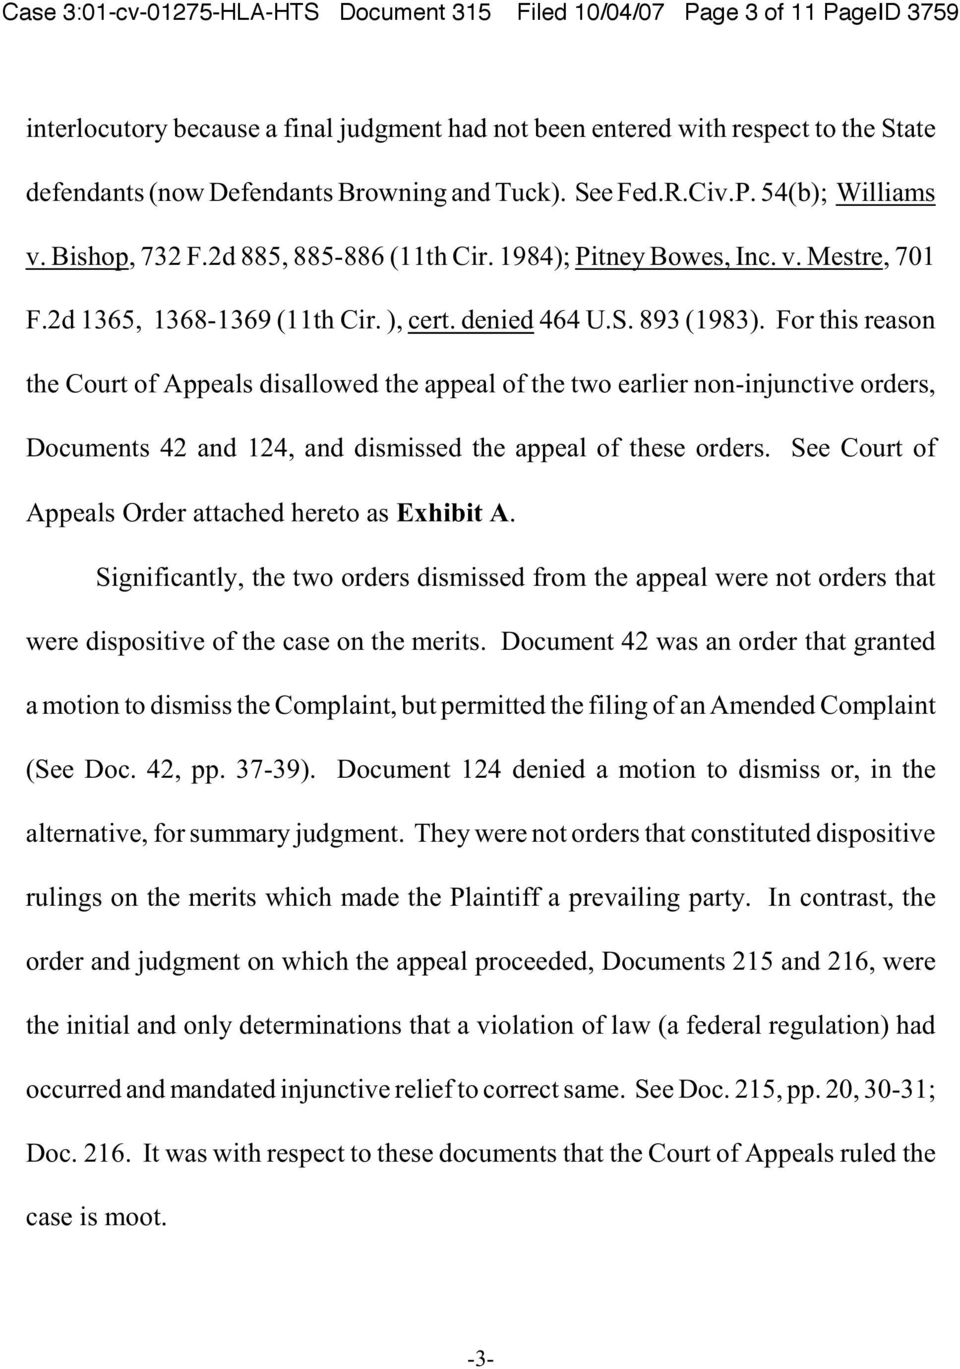 For this reason the Court of Appeals disallowed the appeal of the two earlier non-injunctive orders, Documents 42 and 124, and dismissed the appeal of these orders.